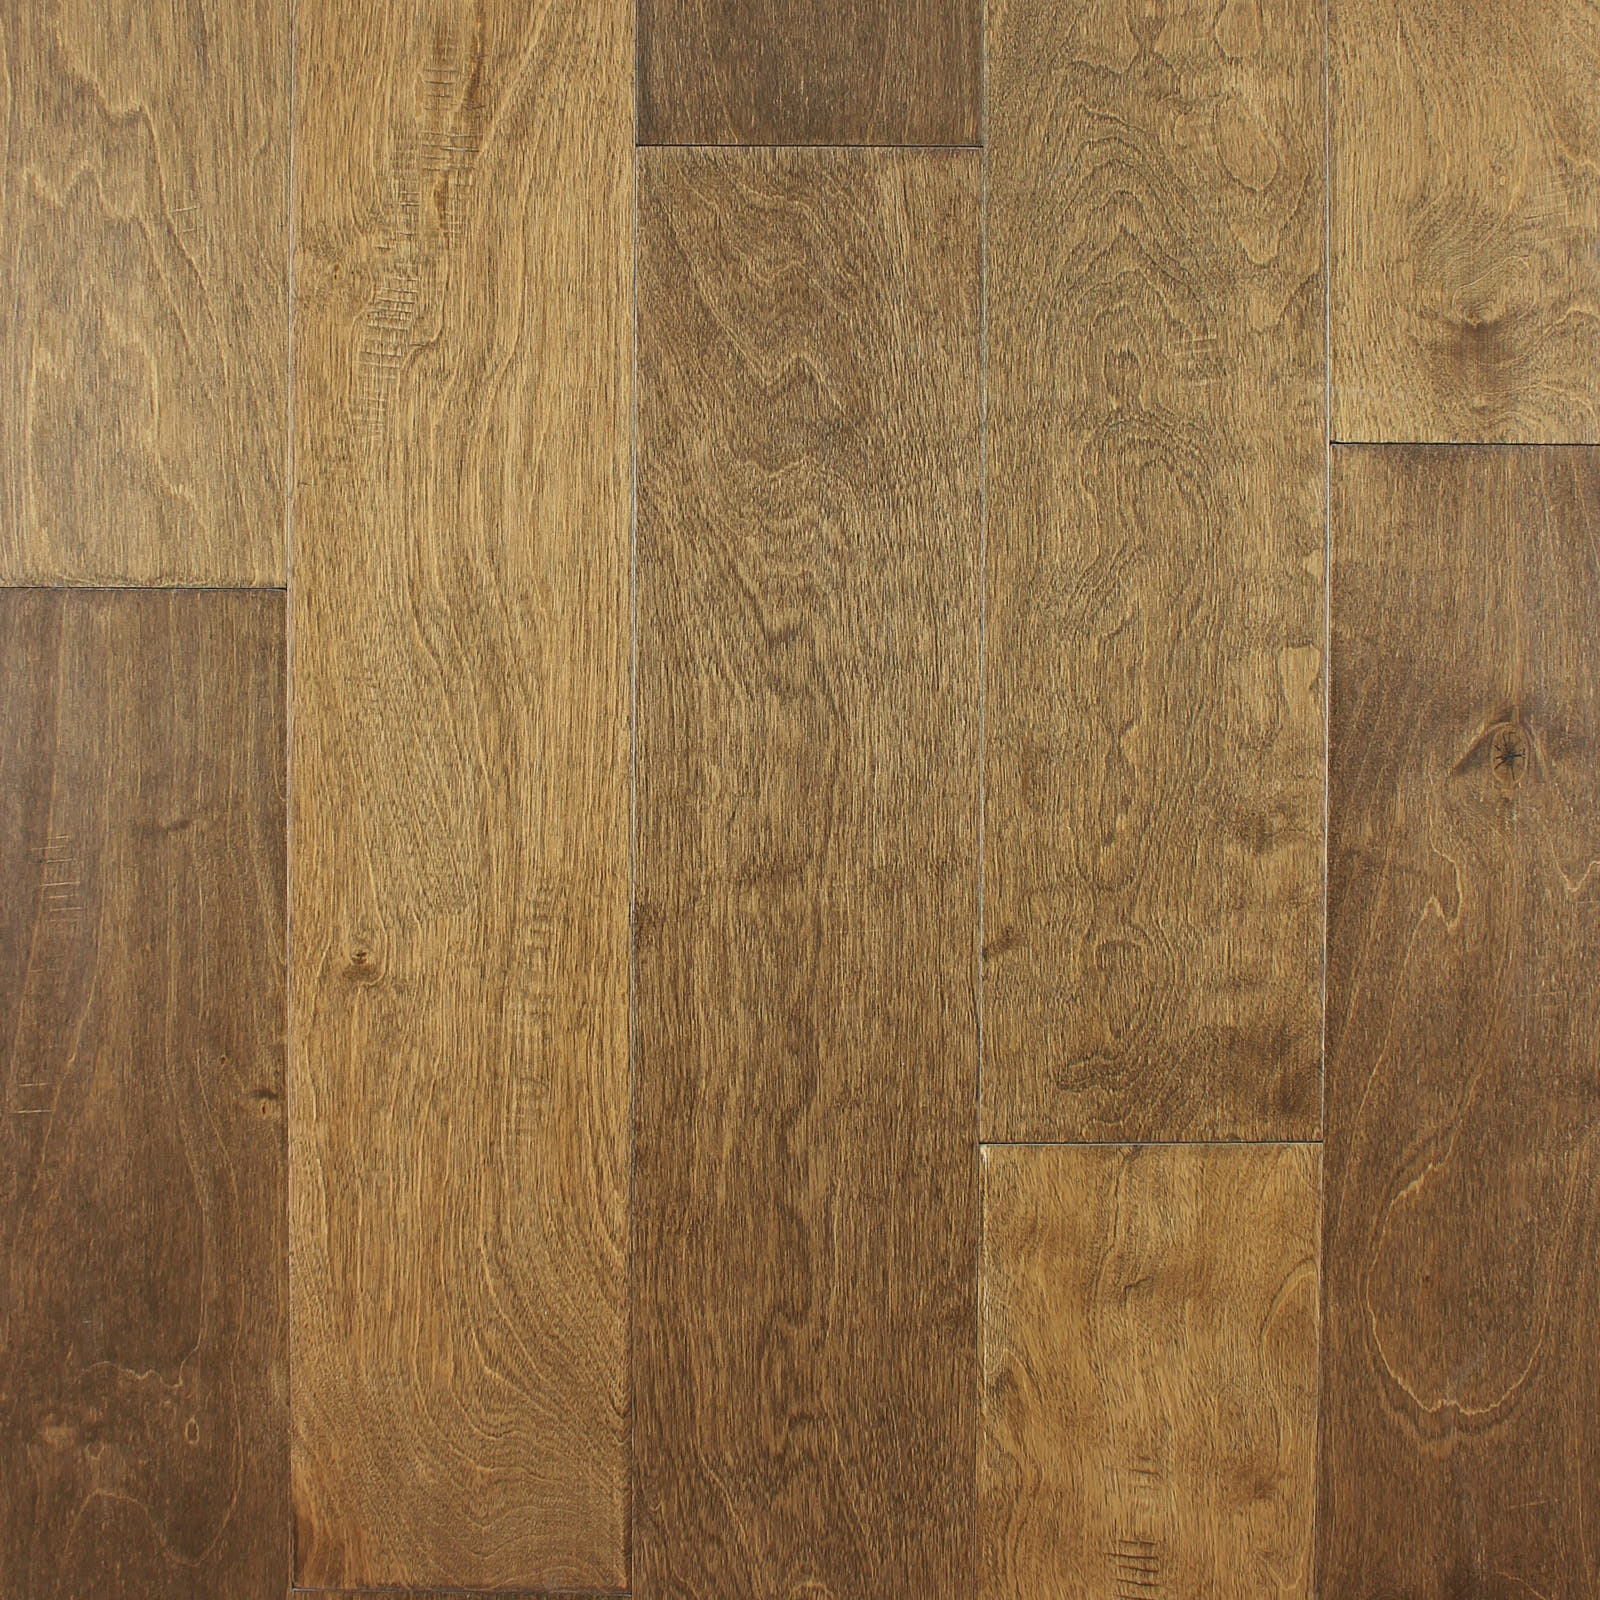 Jameson Scrape Wheat Engineered Hardwood Flooring